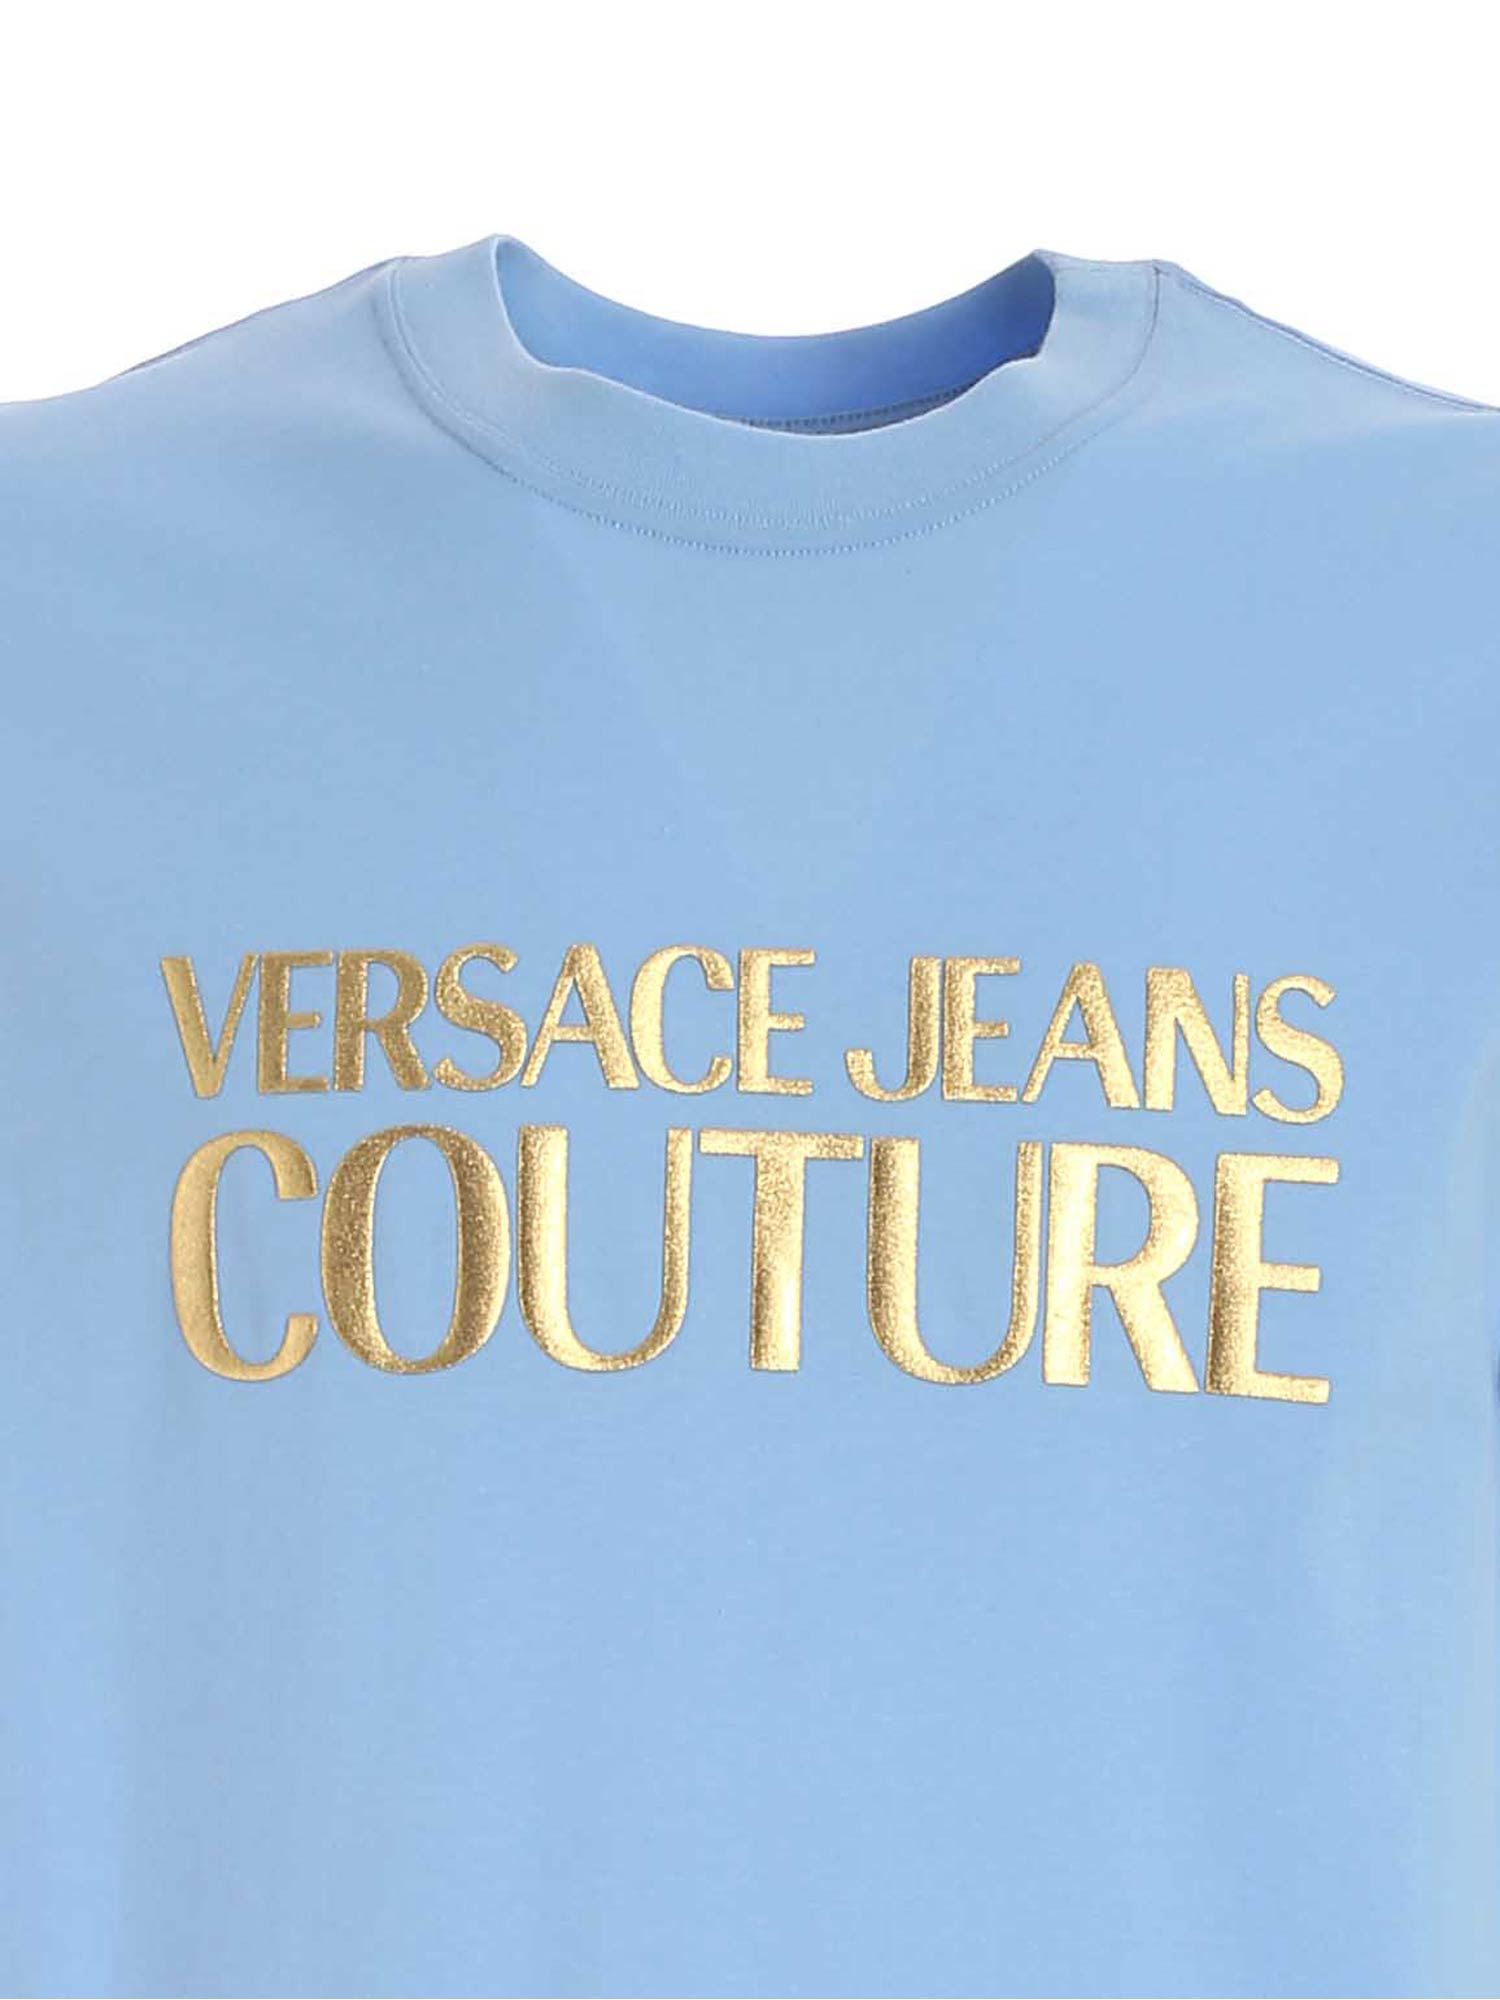 VERSACE JEANS COUTURE Cottons LAMINATED RUBBER LOGO T-SHIRT IN LIGHT BLUE